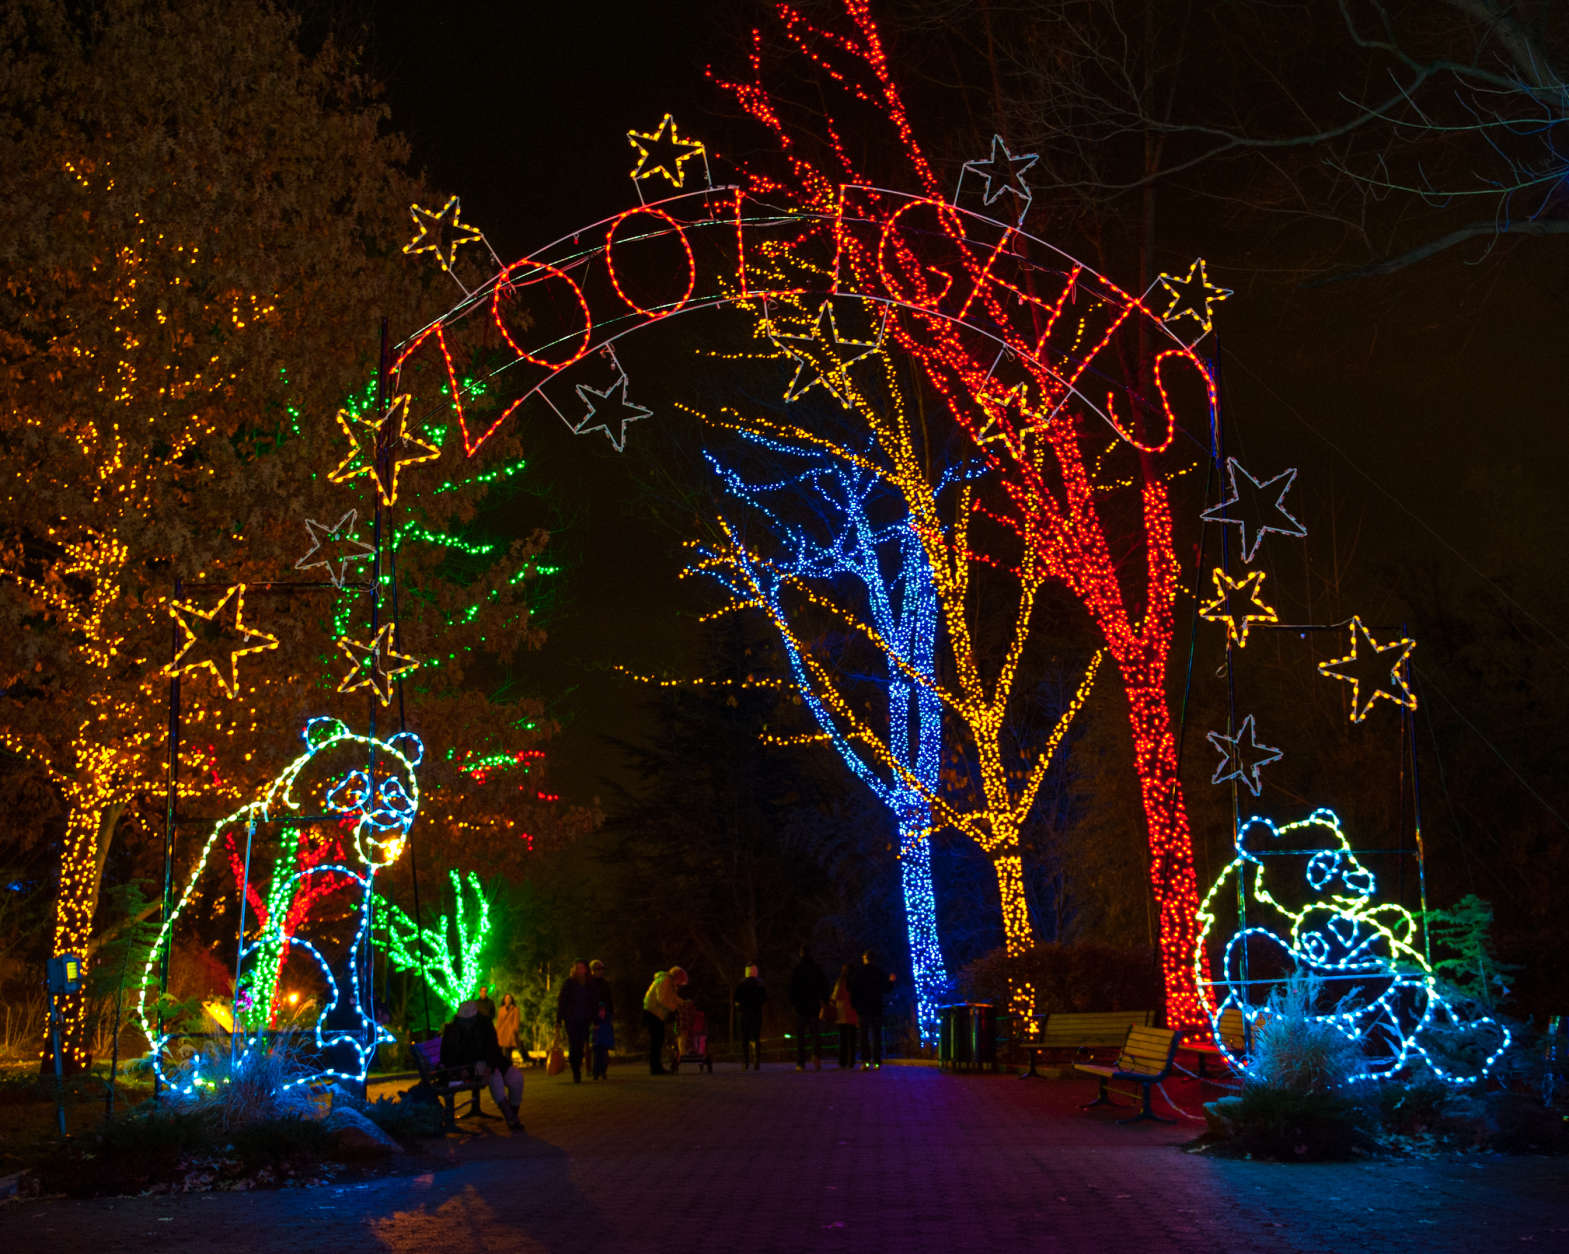 """<p><strong>ZooLights</strong></p> <p>Beginning Nov. 29 and running through Jan. 1, the Smithsonian National Zoo tradition features more than a half-million eco-friendly lights. This year&#8217;s event includes a gingerbread village, a holiday market and rides on the Zoo Choo-Choo. Admission is free, and the show runs from 5 to 9 p.m. More information is available on the zoo&#8217;s <a href=""""https://nationalzoo.si.edu/events/zoolights"""" target=""""_blank"""" rel=""""noopener"""">website</a>.</p>"""